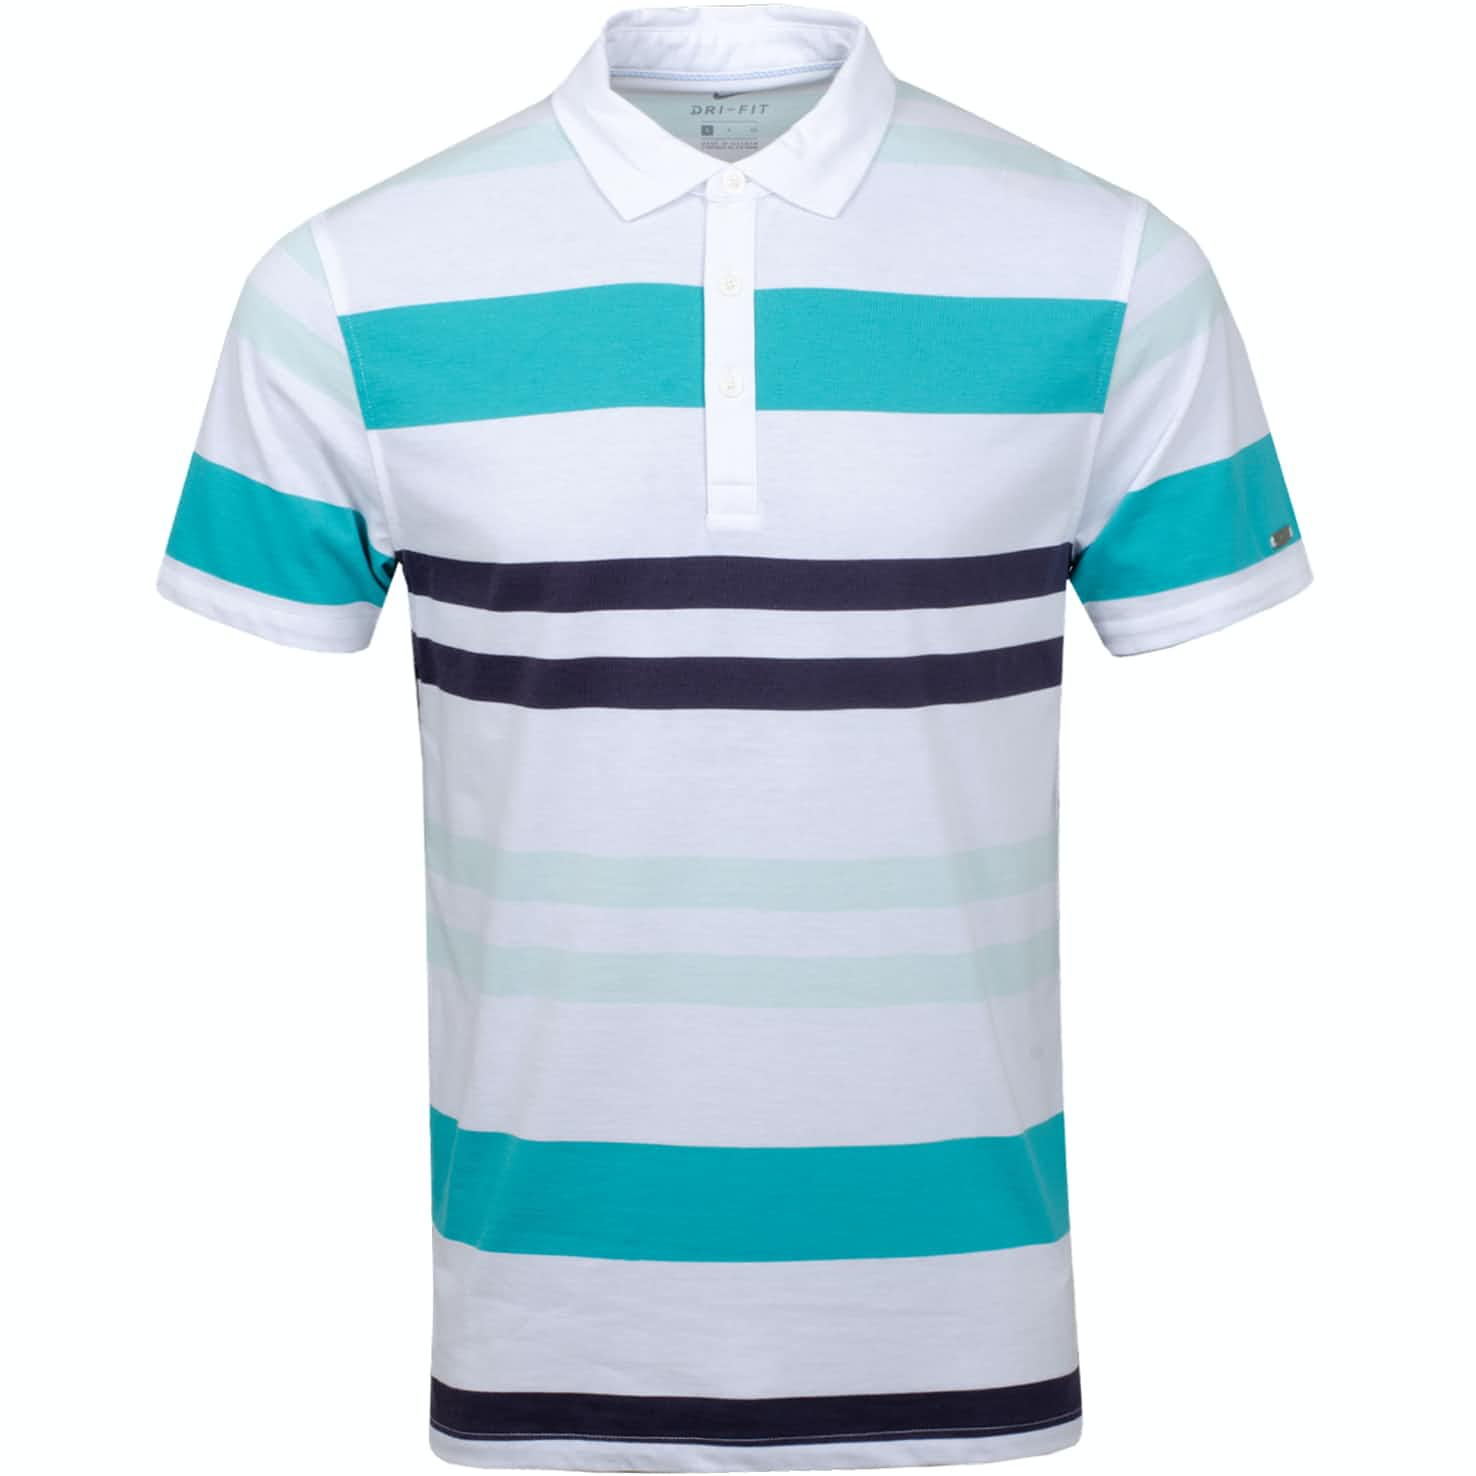 Dry Player YD Stripe Polo White/Teal Tint - Summer 19